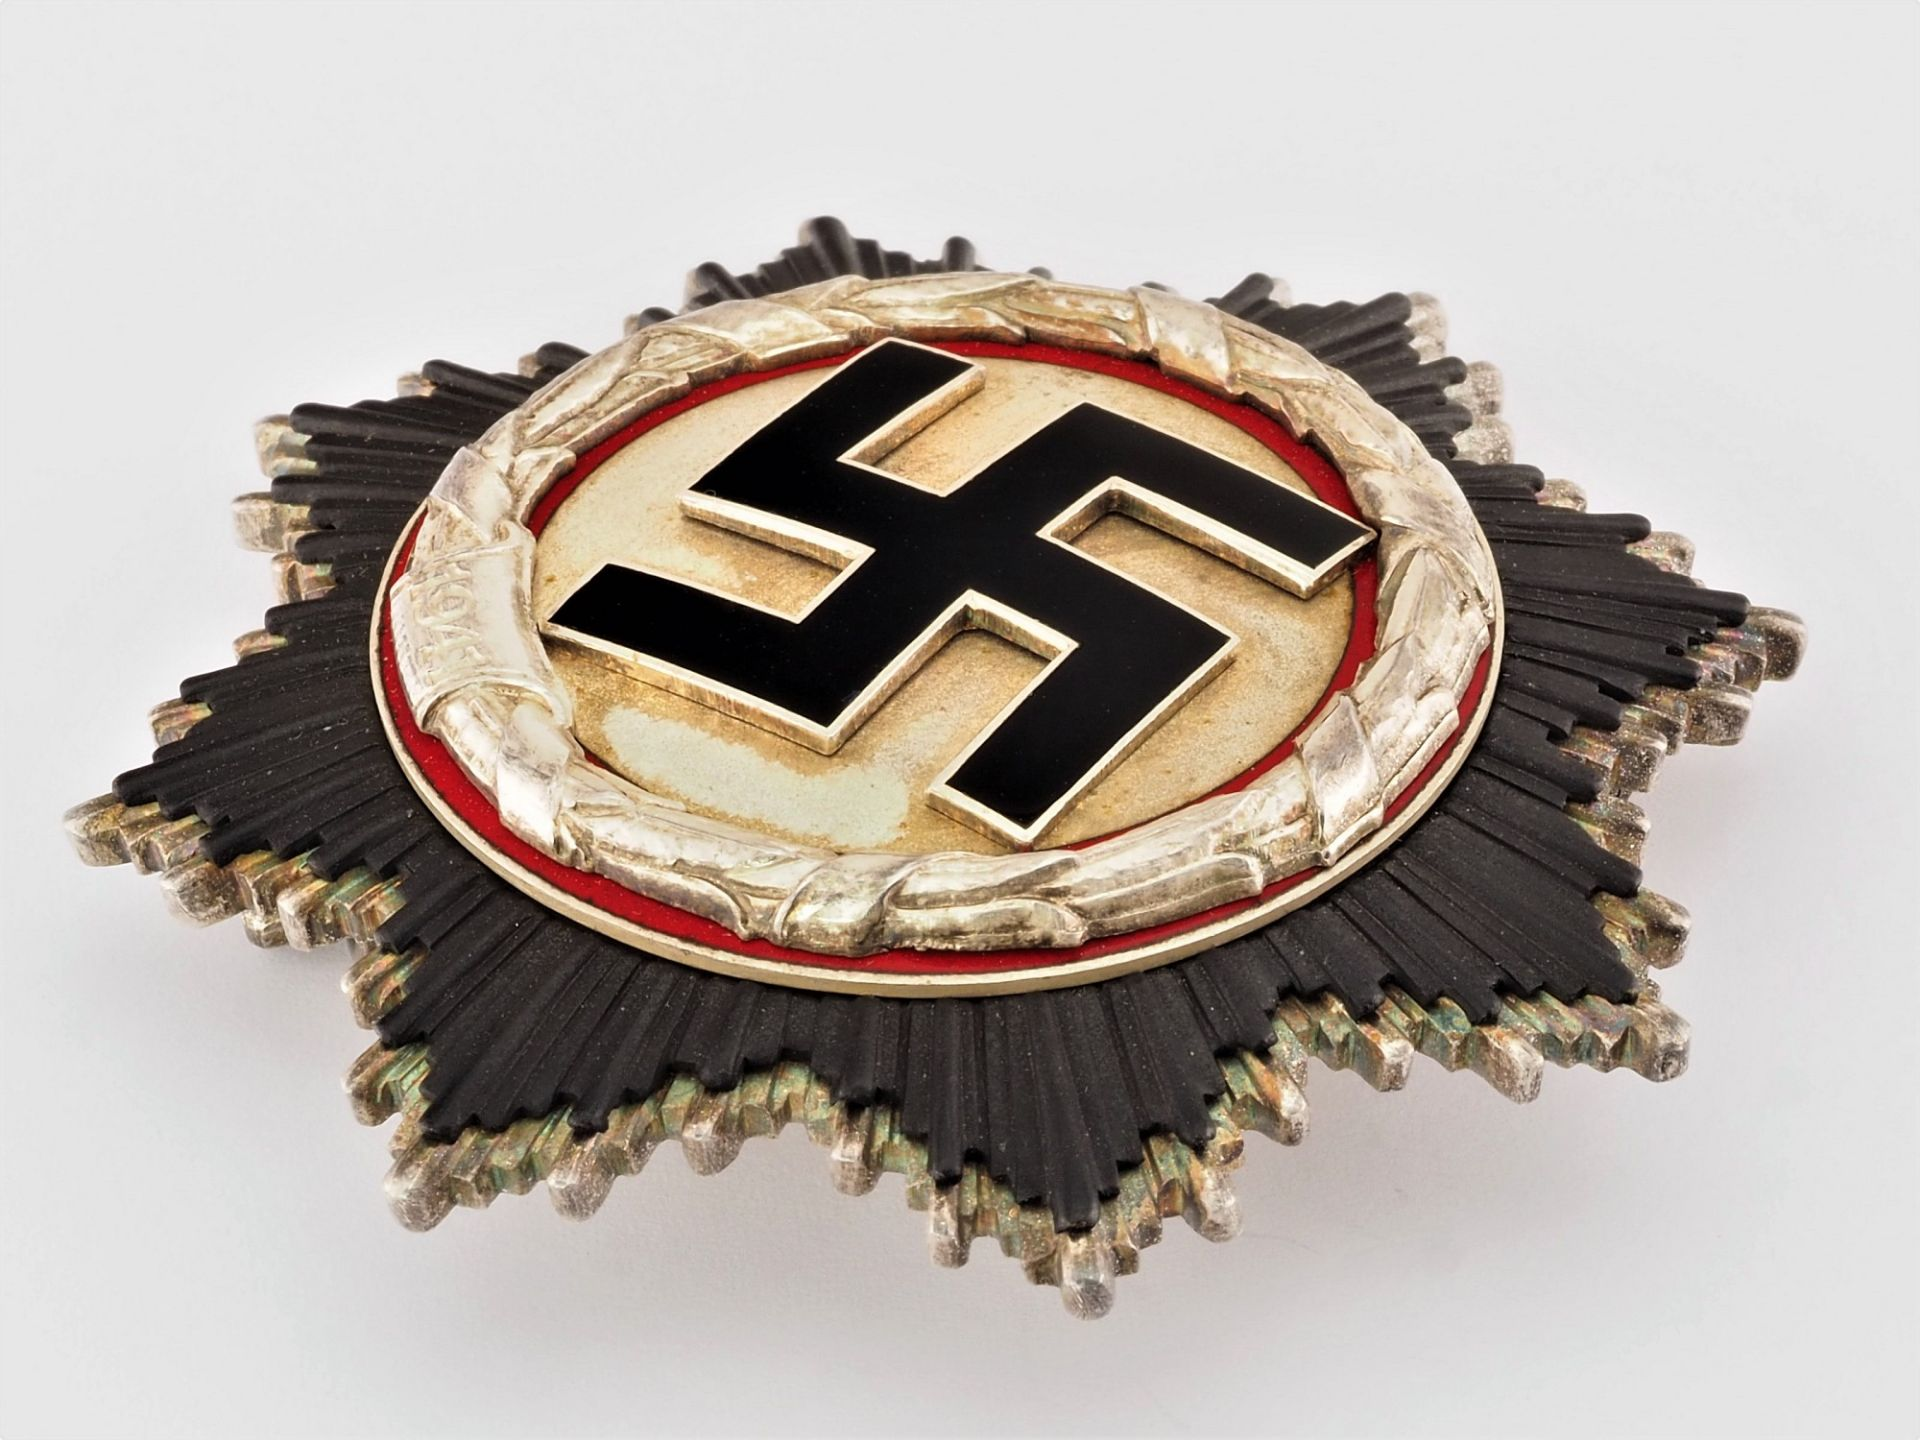 World War 2, Third Reich, Medals & Decorations Legacy: Commanding General of the Luftwaffe (Wehrmac - Image 4 of 27